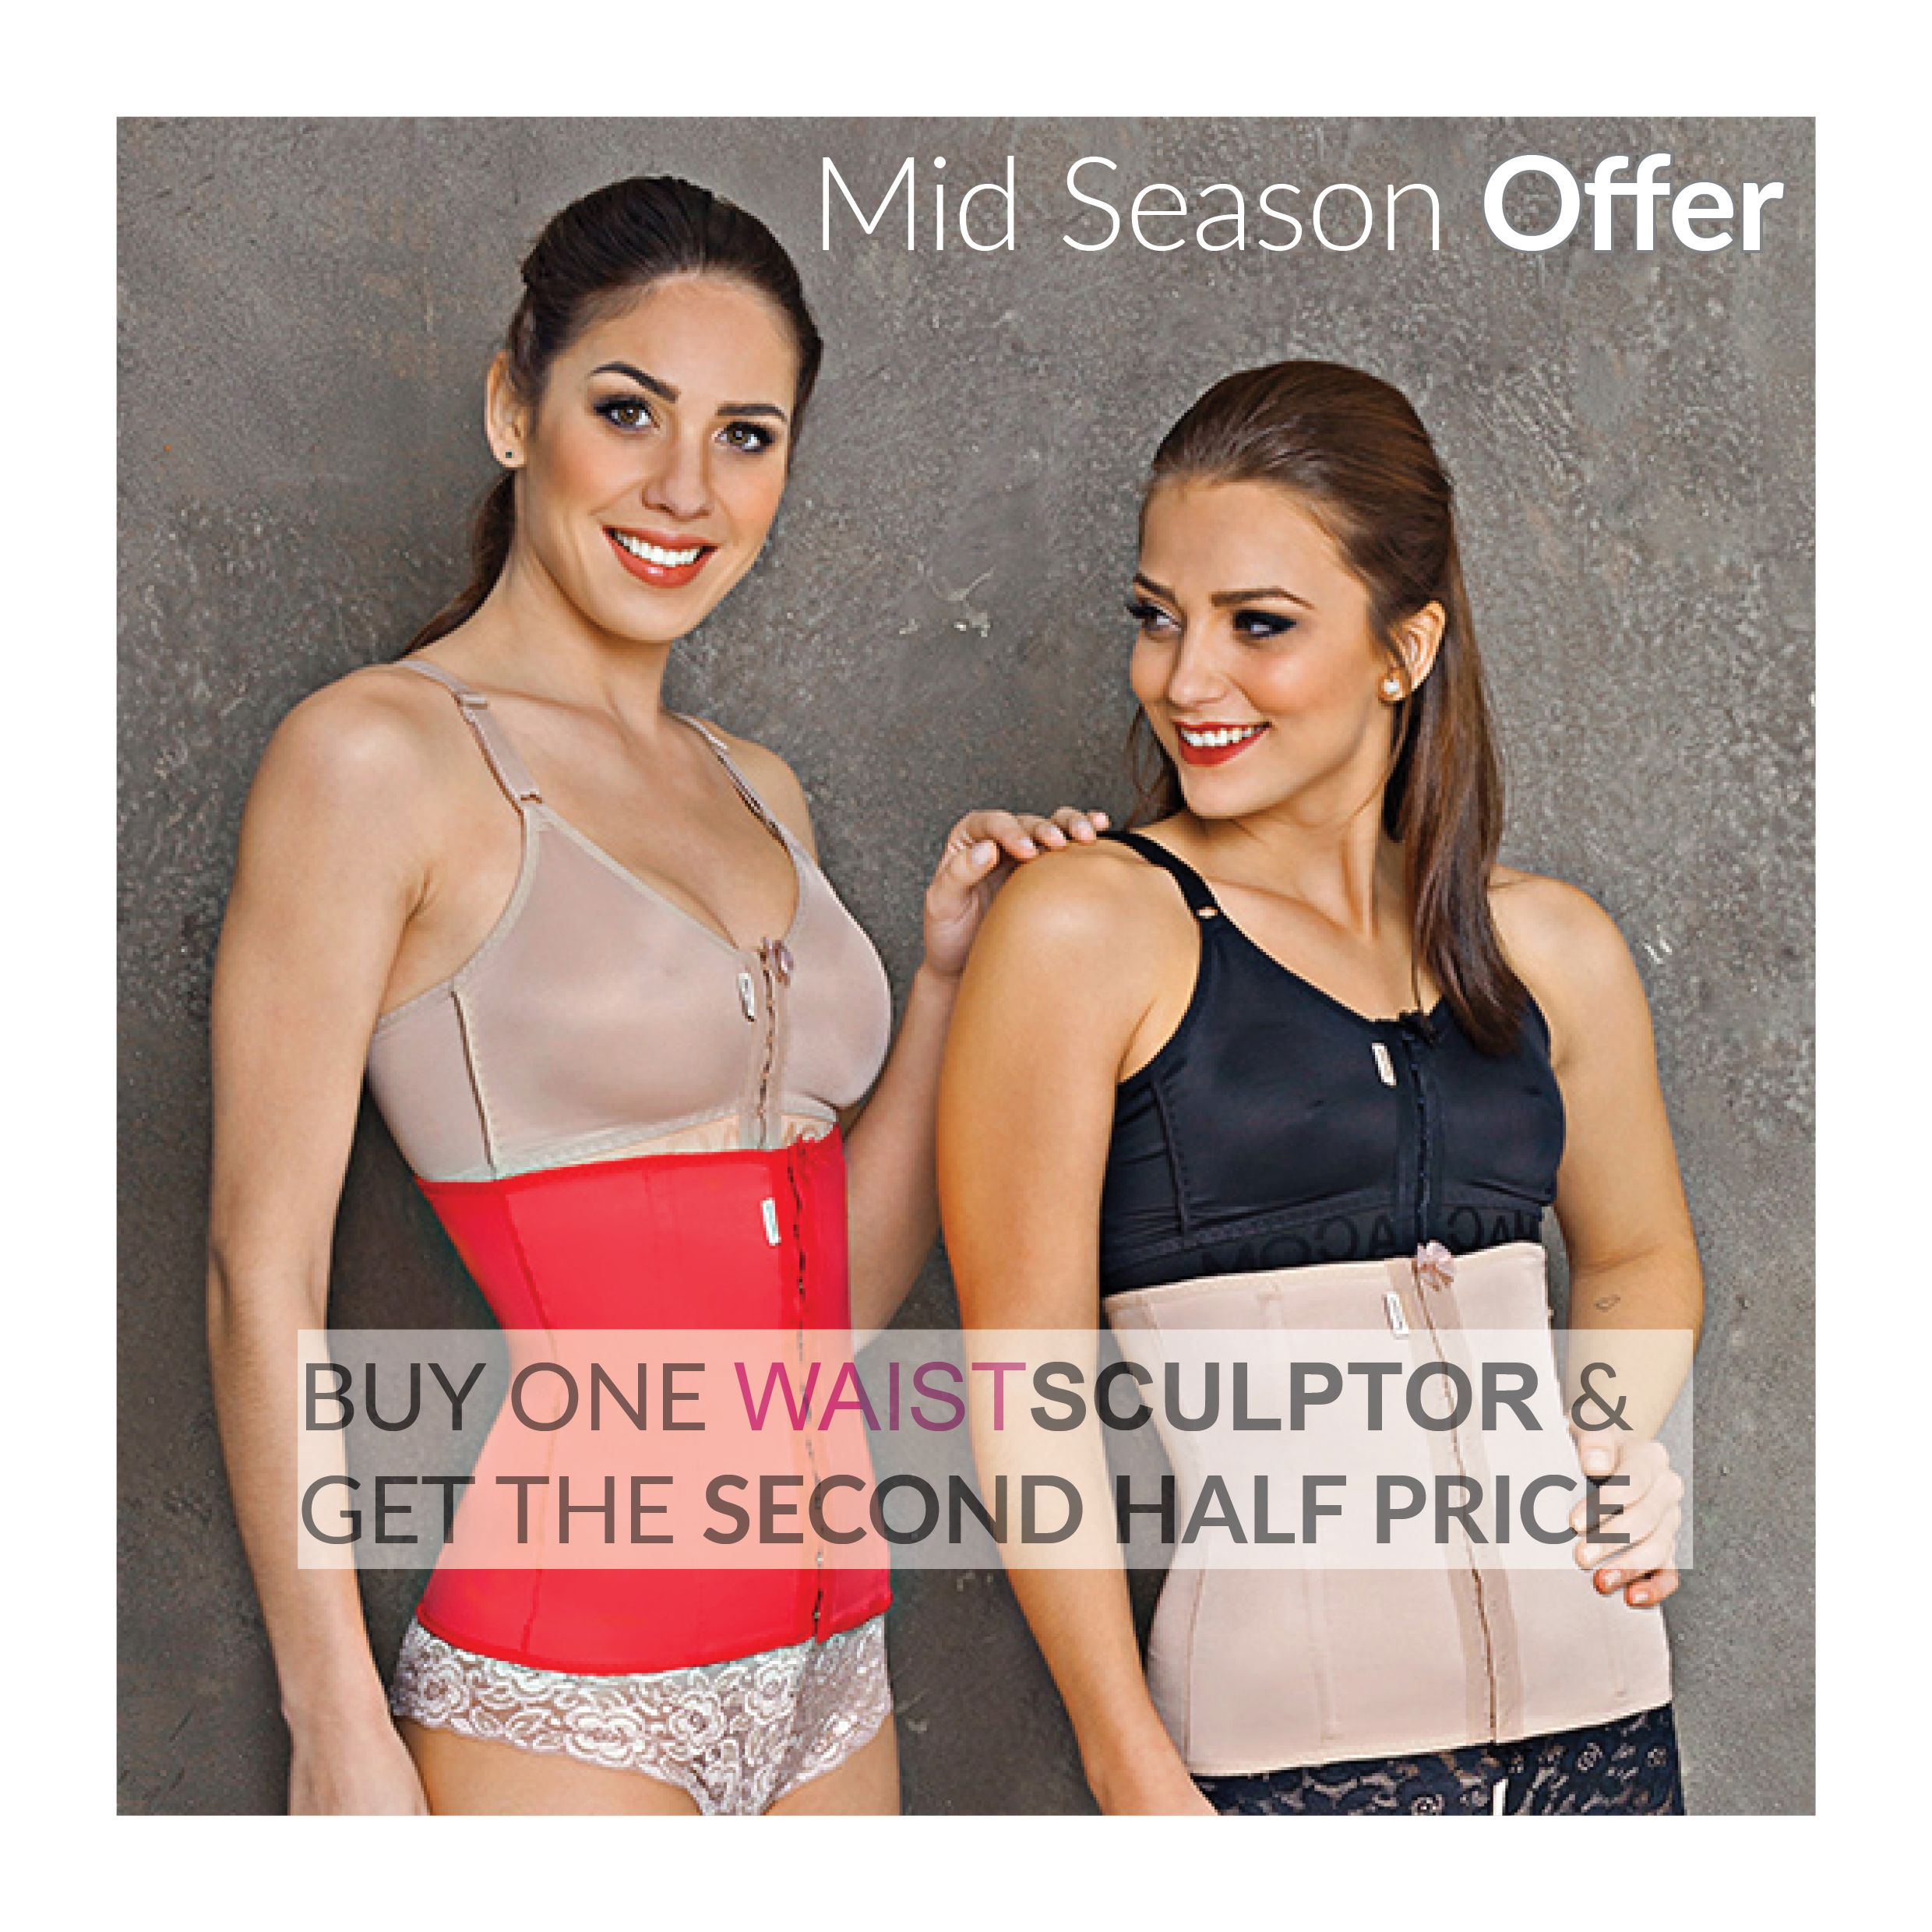 afbd1bb82c5d4 ... Waist Sculptor by MACOM Medical. Buy one WAISTSCULPTOR and get the  second half price. Coupon code  WAISTSCULPTOR OFFER pted